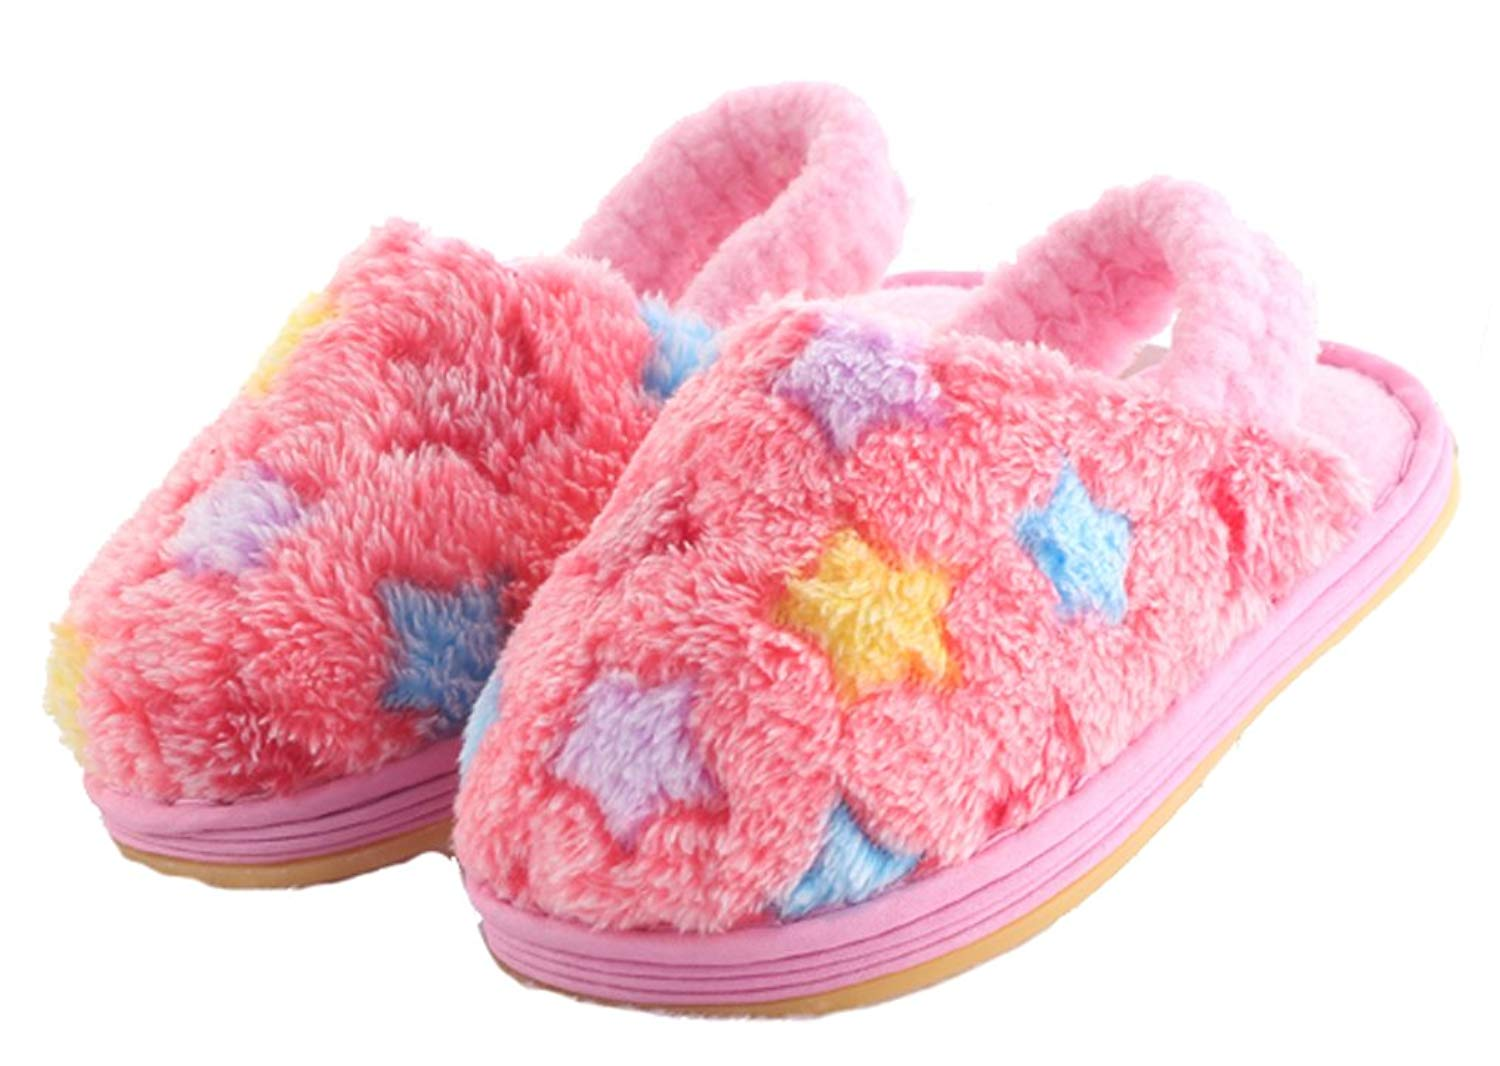 d9738b27ee56 Get Quotations · D.S.MOR Toddler Star Kids Slippers Cute Slippers House  Slippers